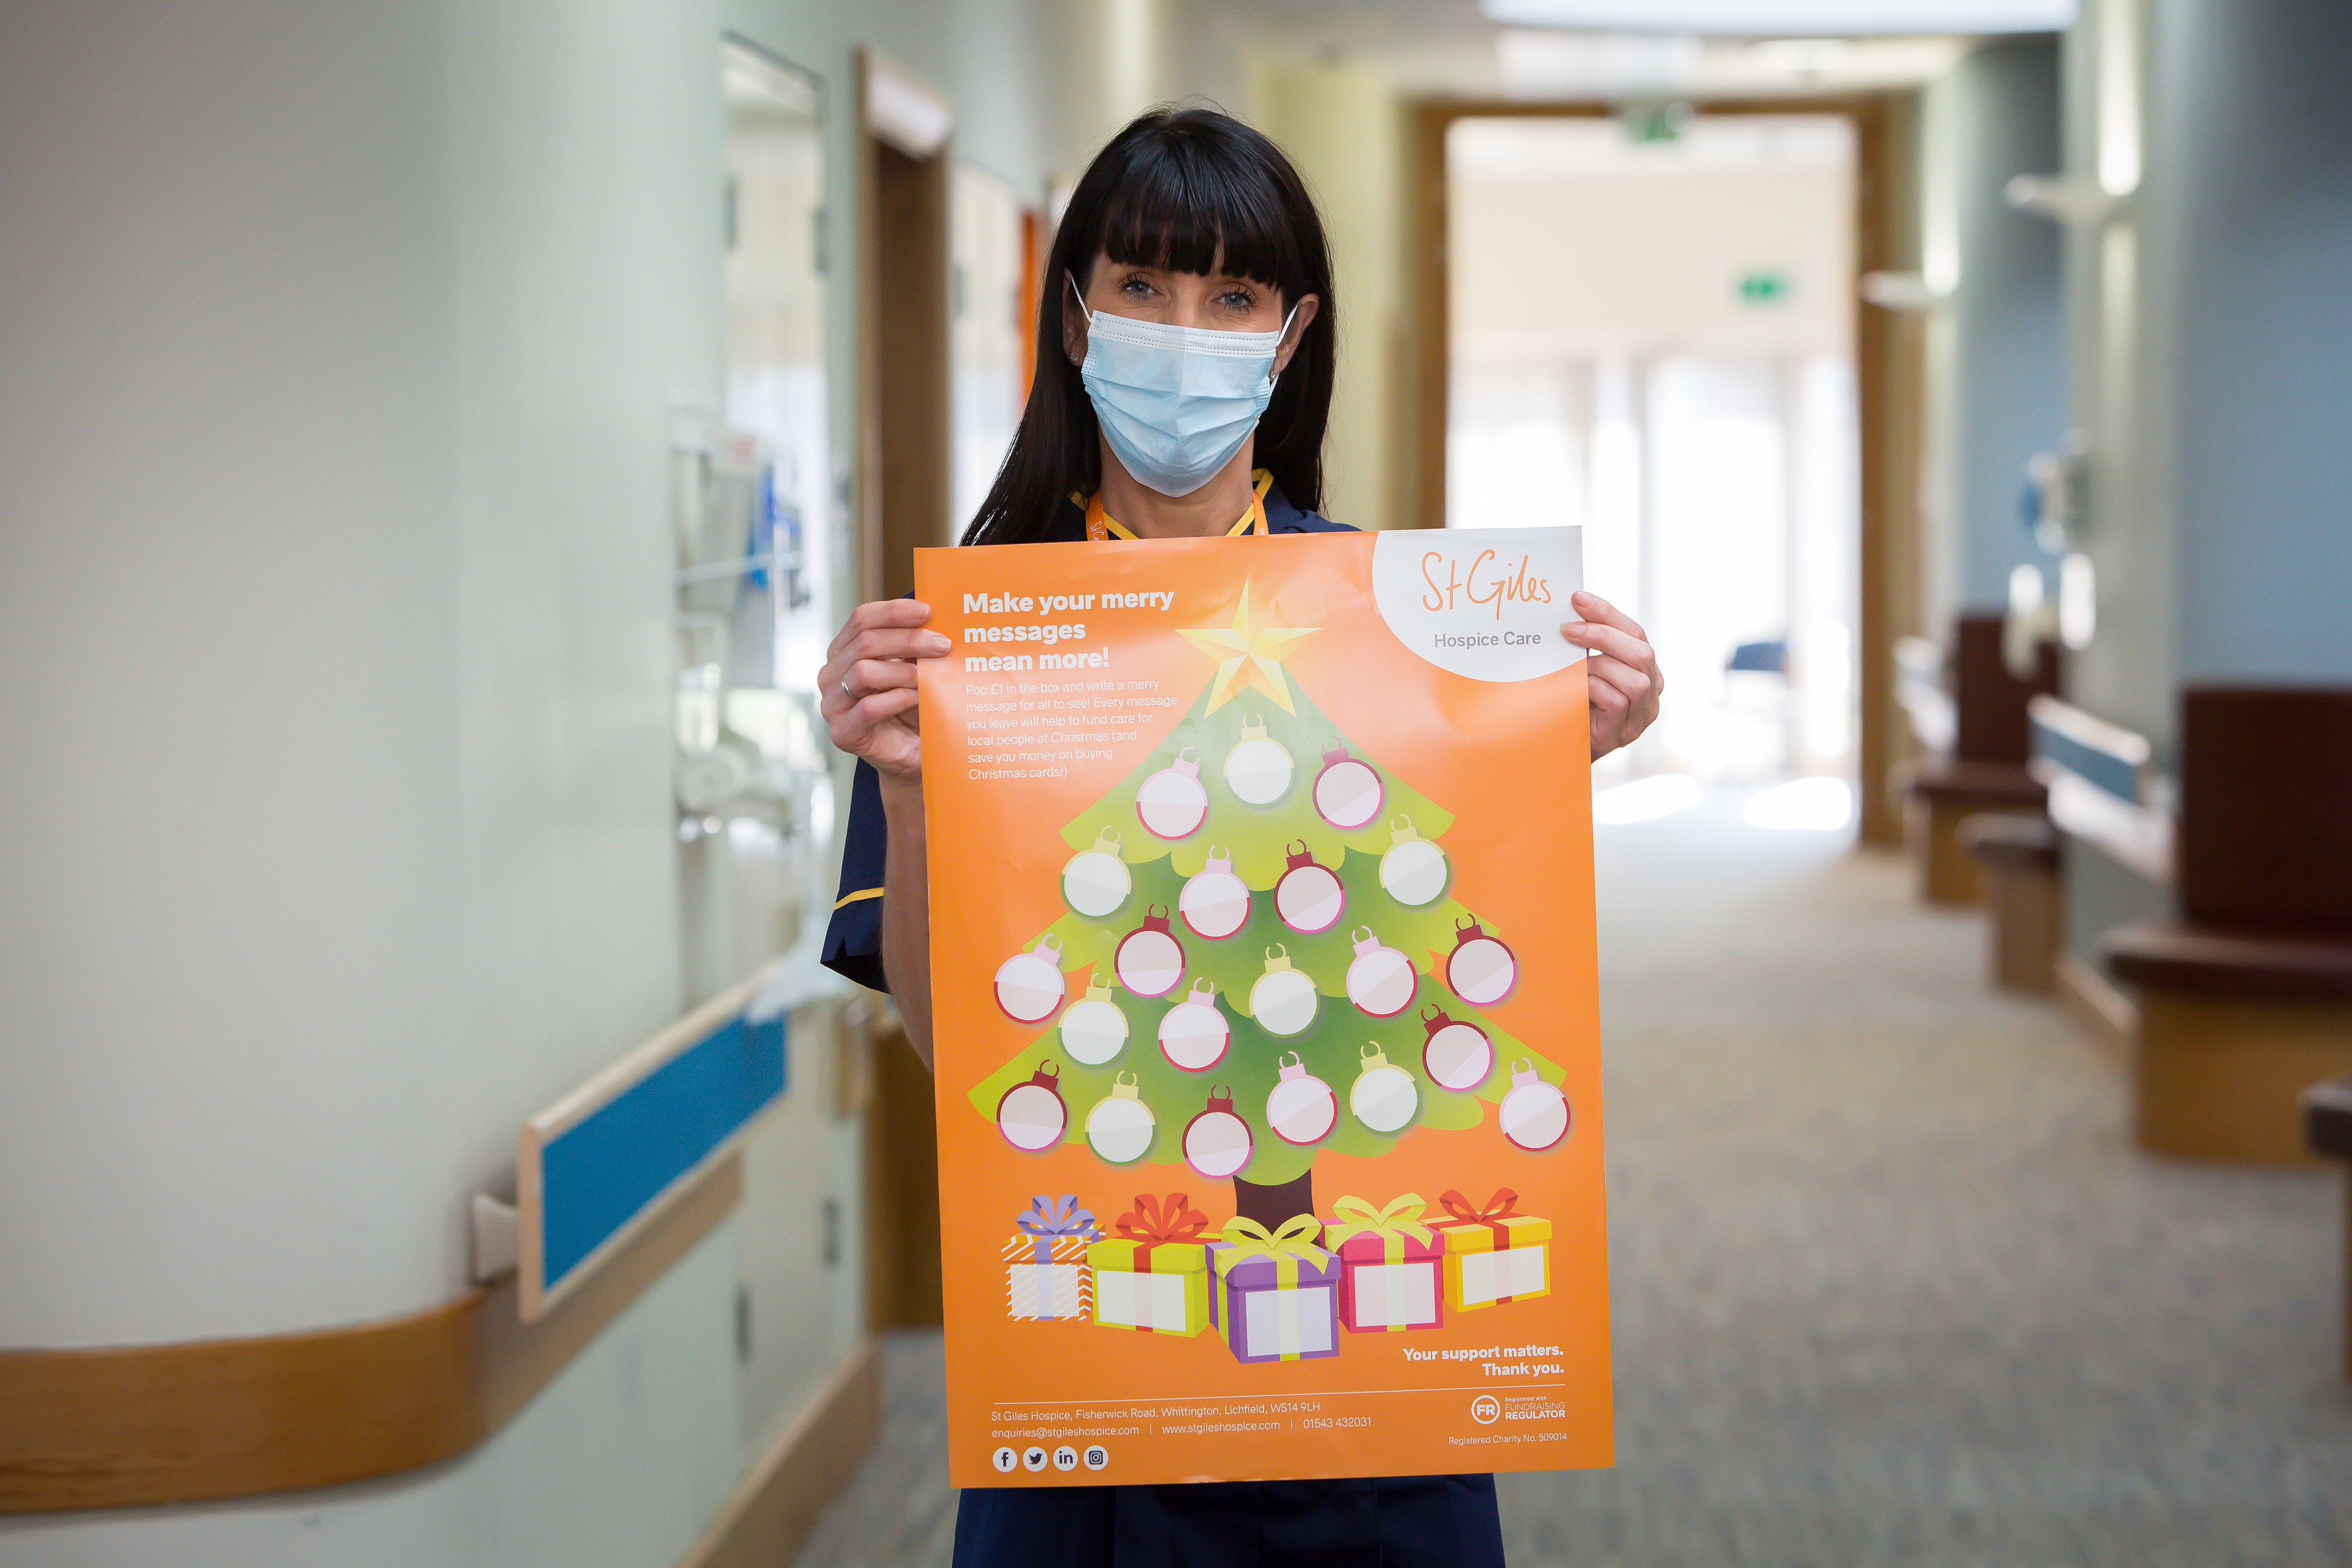 St Giles Hospice Clinical Director Katie Burbridge with the Merry Messages poster